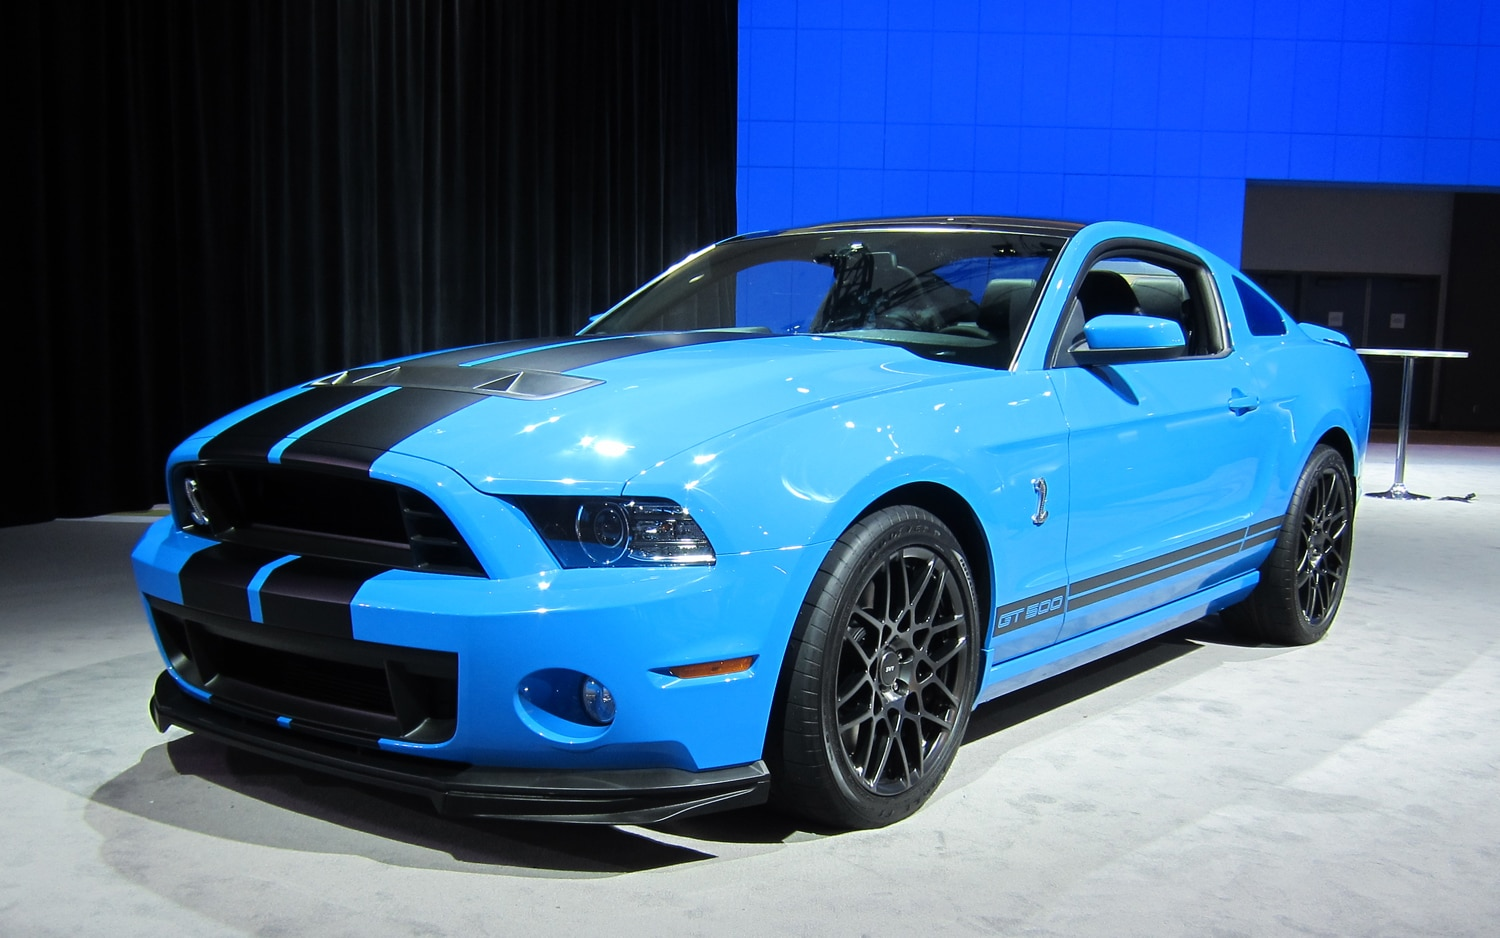 los angeles 2011 ford unveils refreshed 2013 mustangs. Black Bedroom Furniture Sets. Home Design Ideas